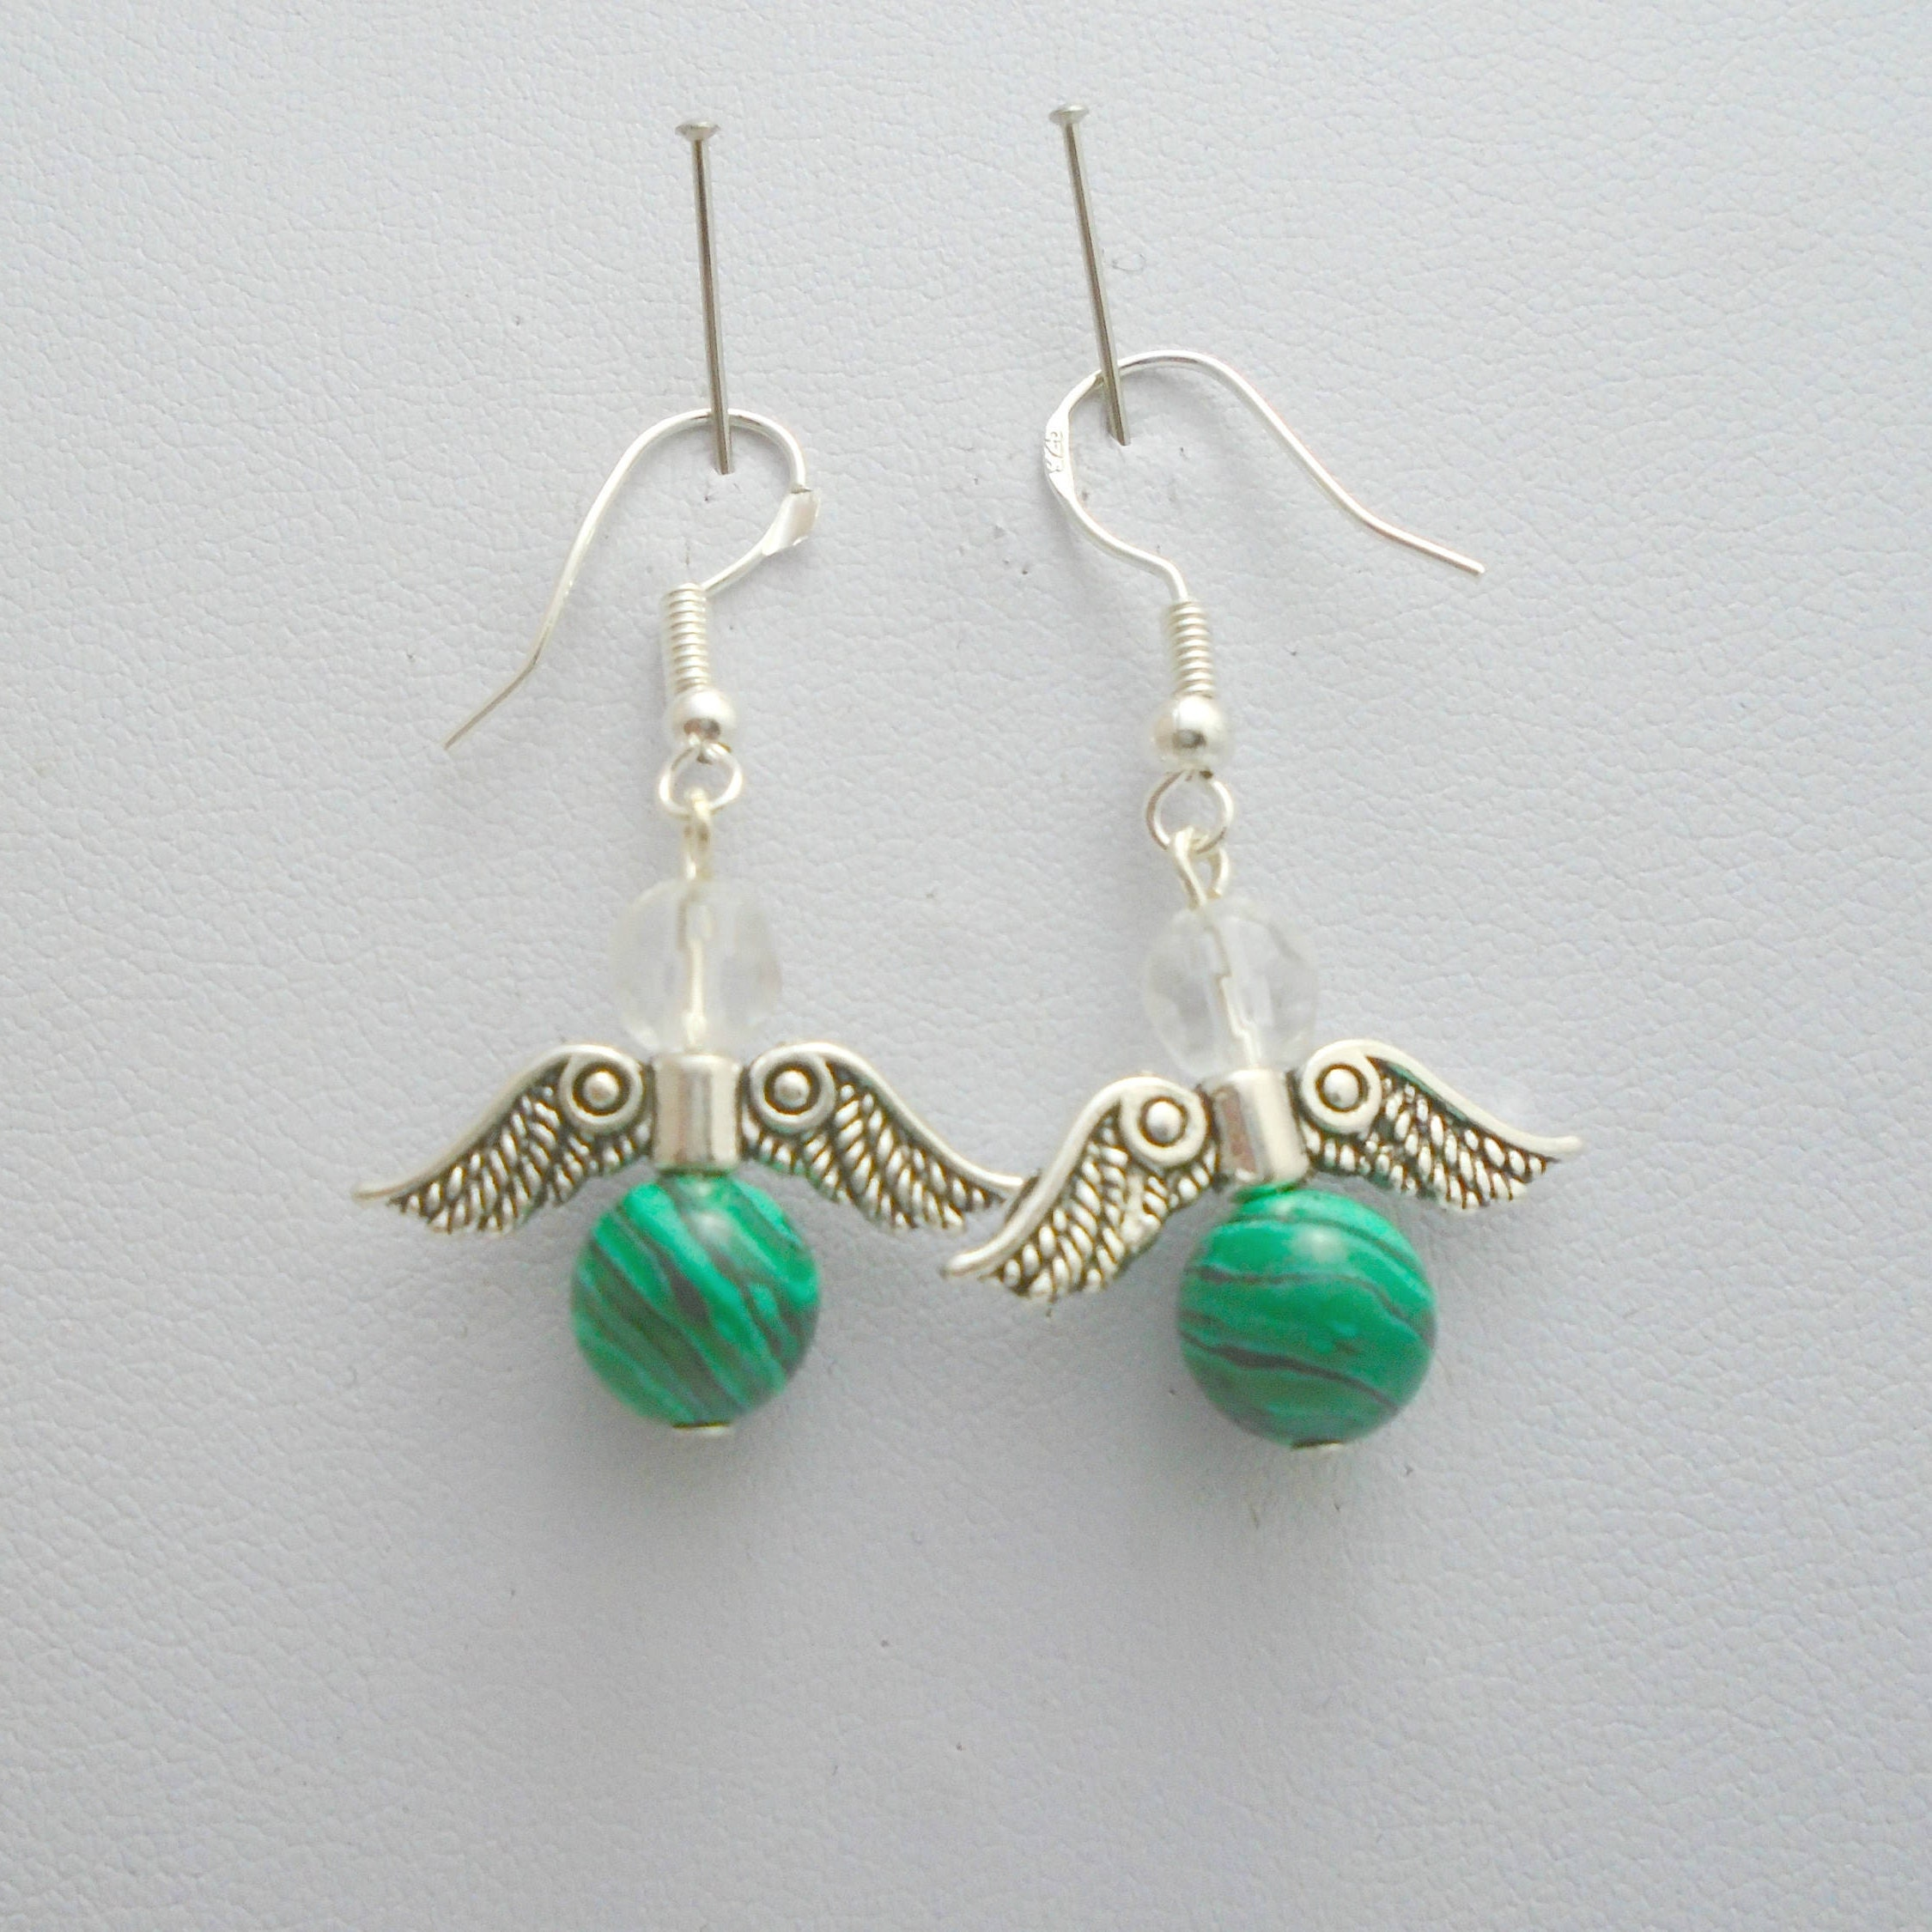 Malachite Earrings Guardian Angel Green Gemstone Earrings Angel Wing Earrings Malachite Jewelry Angel Wings Chakra Earrings